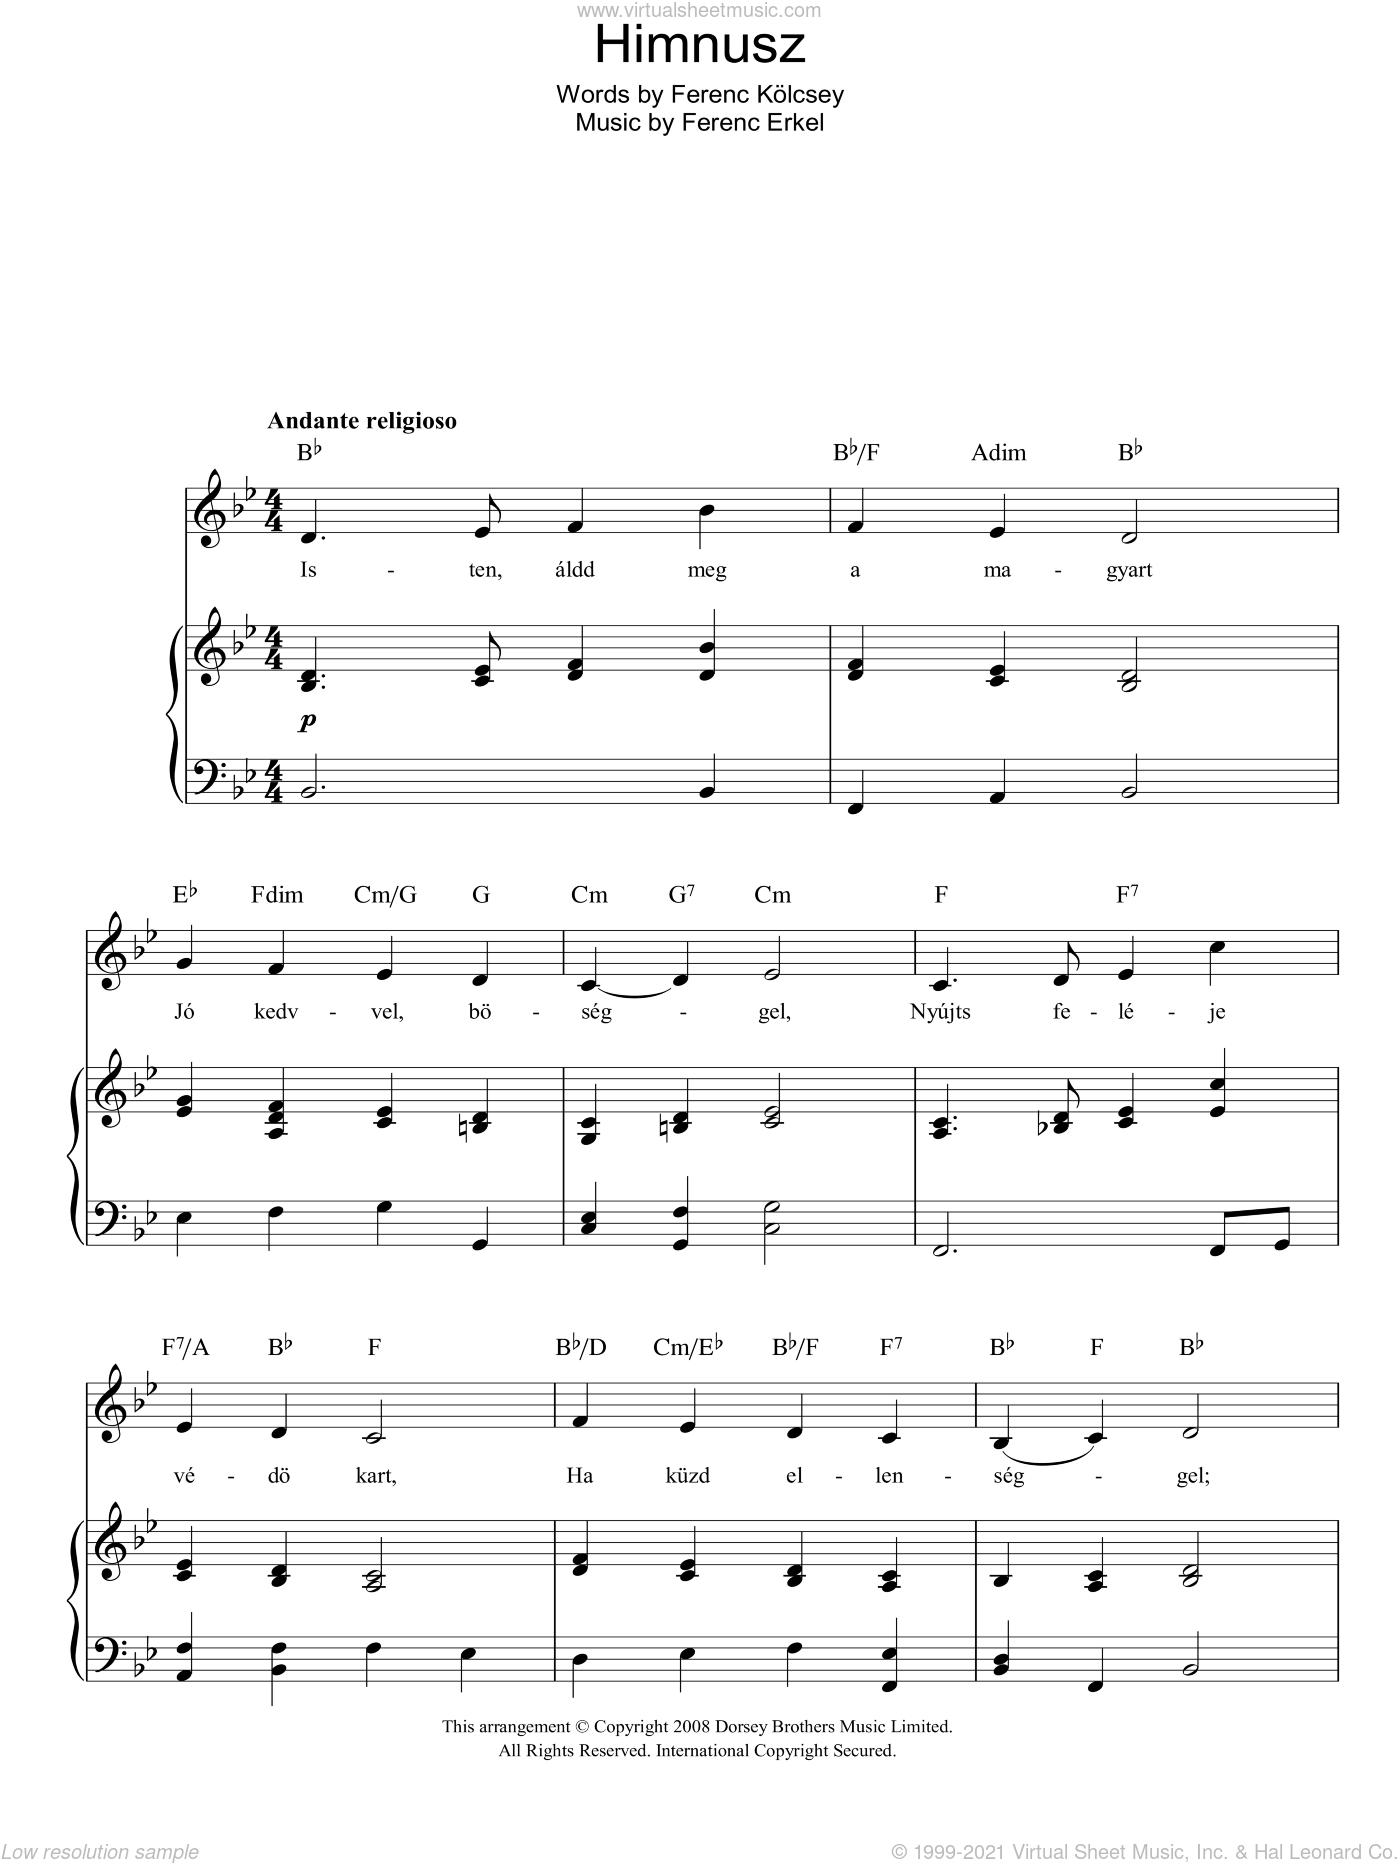 Himnusz (Hungarian National Anthem) sheet music for voice, piano or guitar by Ferenc Kolcsey